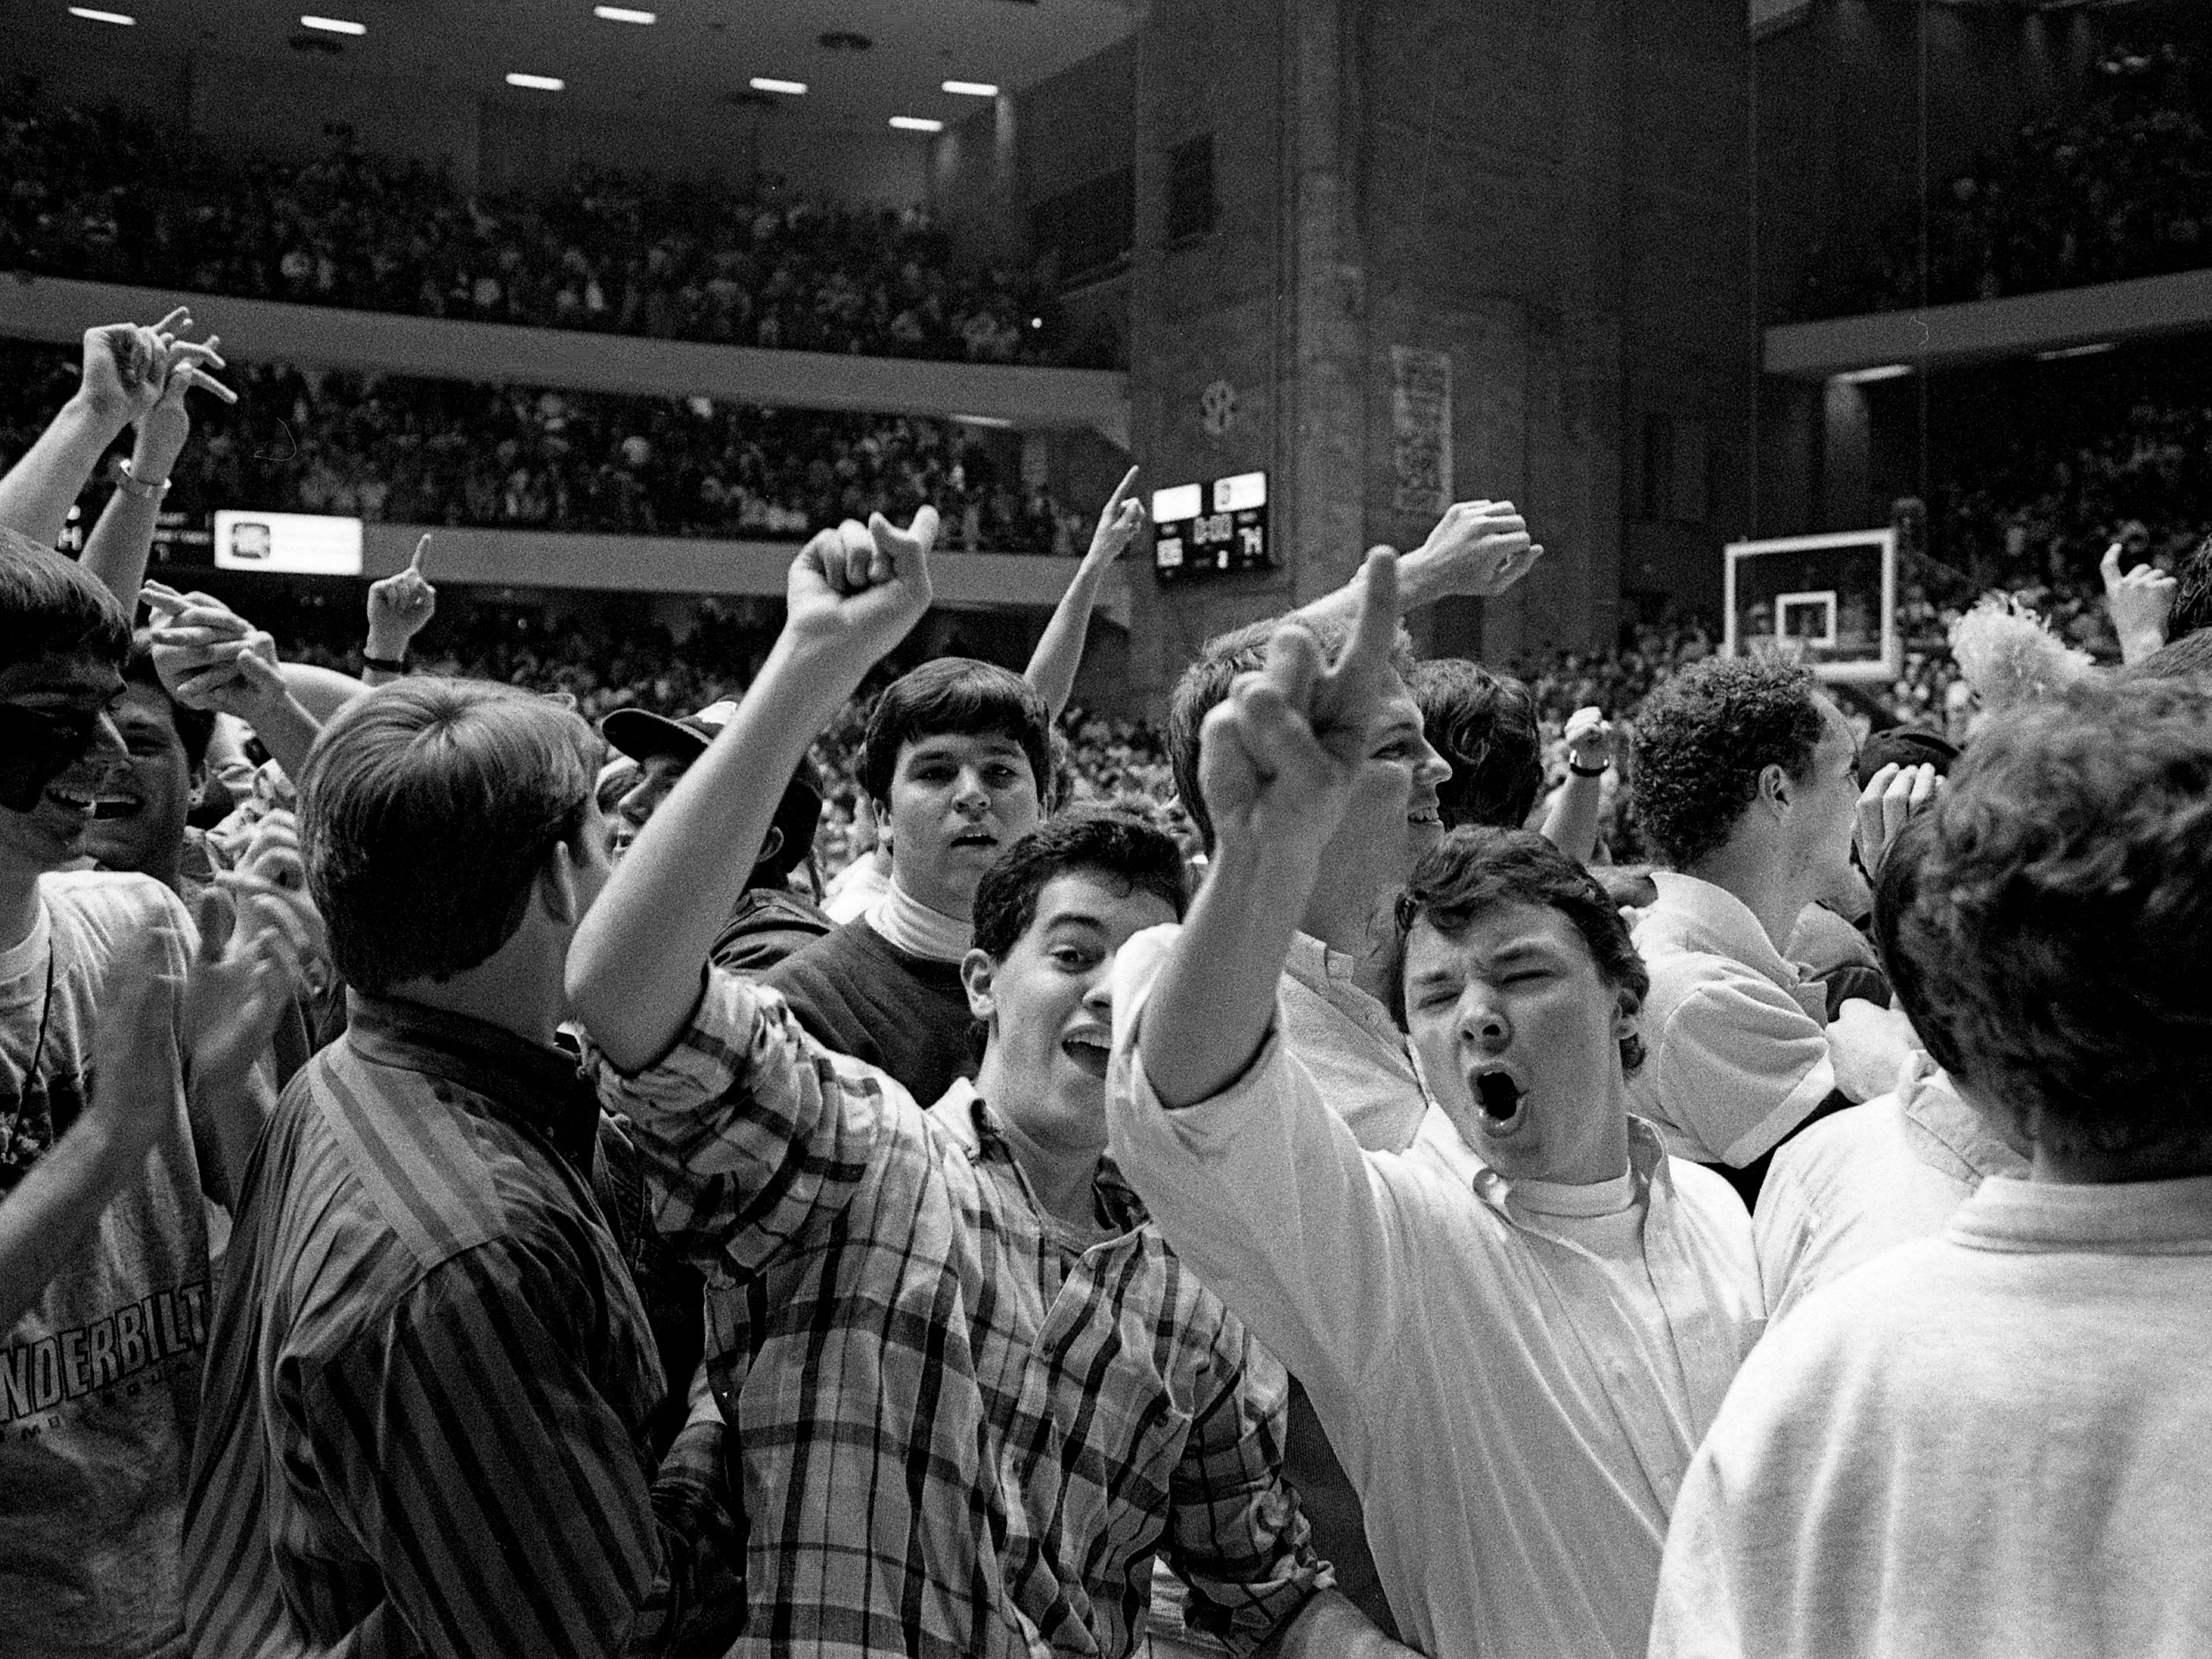 Vanderbilt students and fans celebrate on the Memorial Gym floor Feb. 18, 1989, after the Commodores blew away LSU 108-74 before a deafening partisan crowd of 15,646.